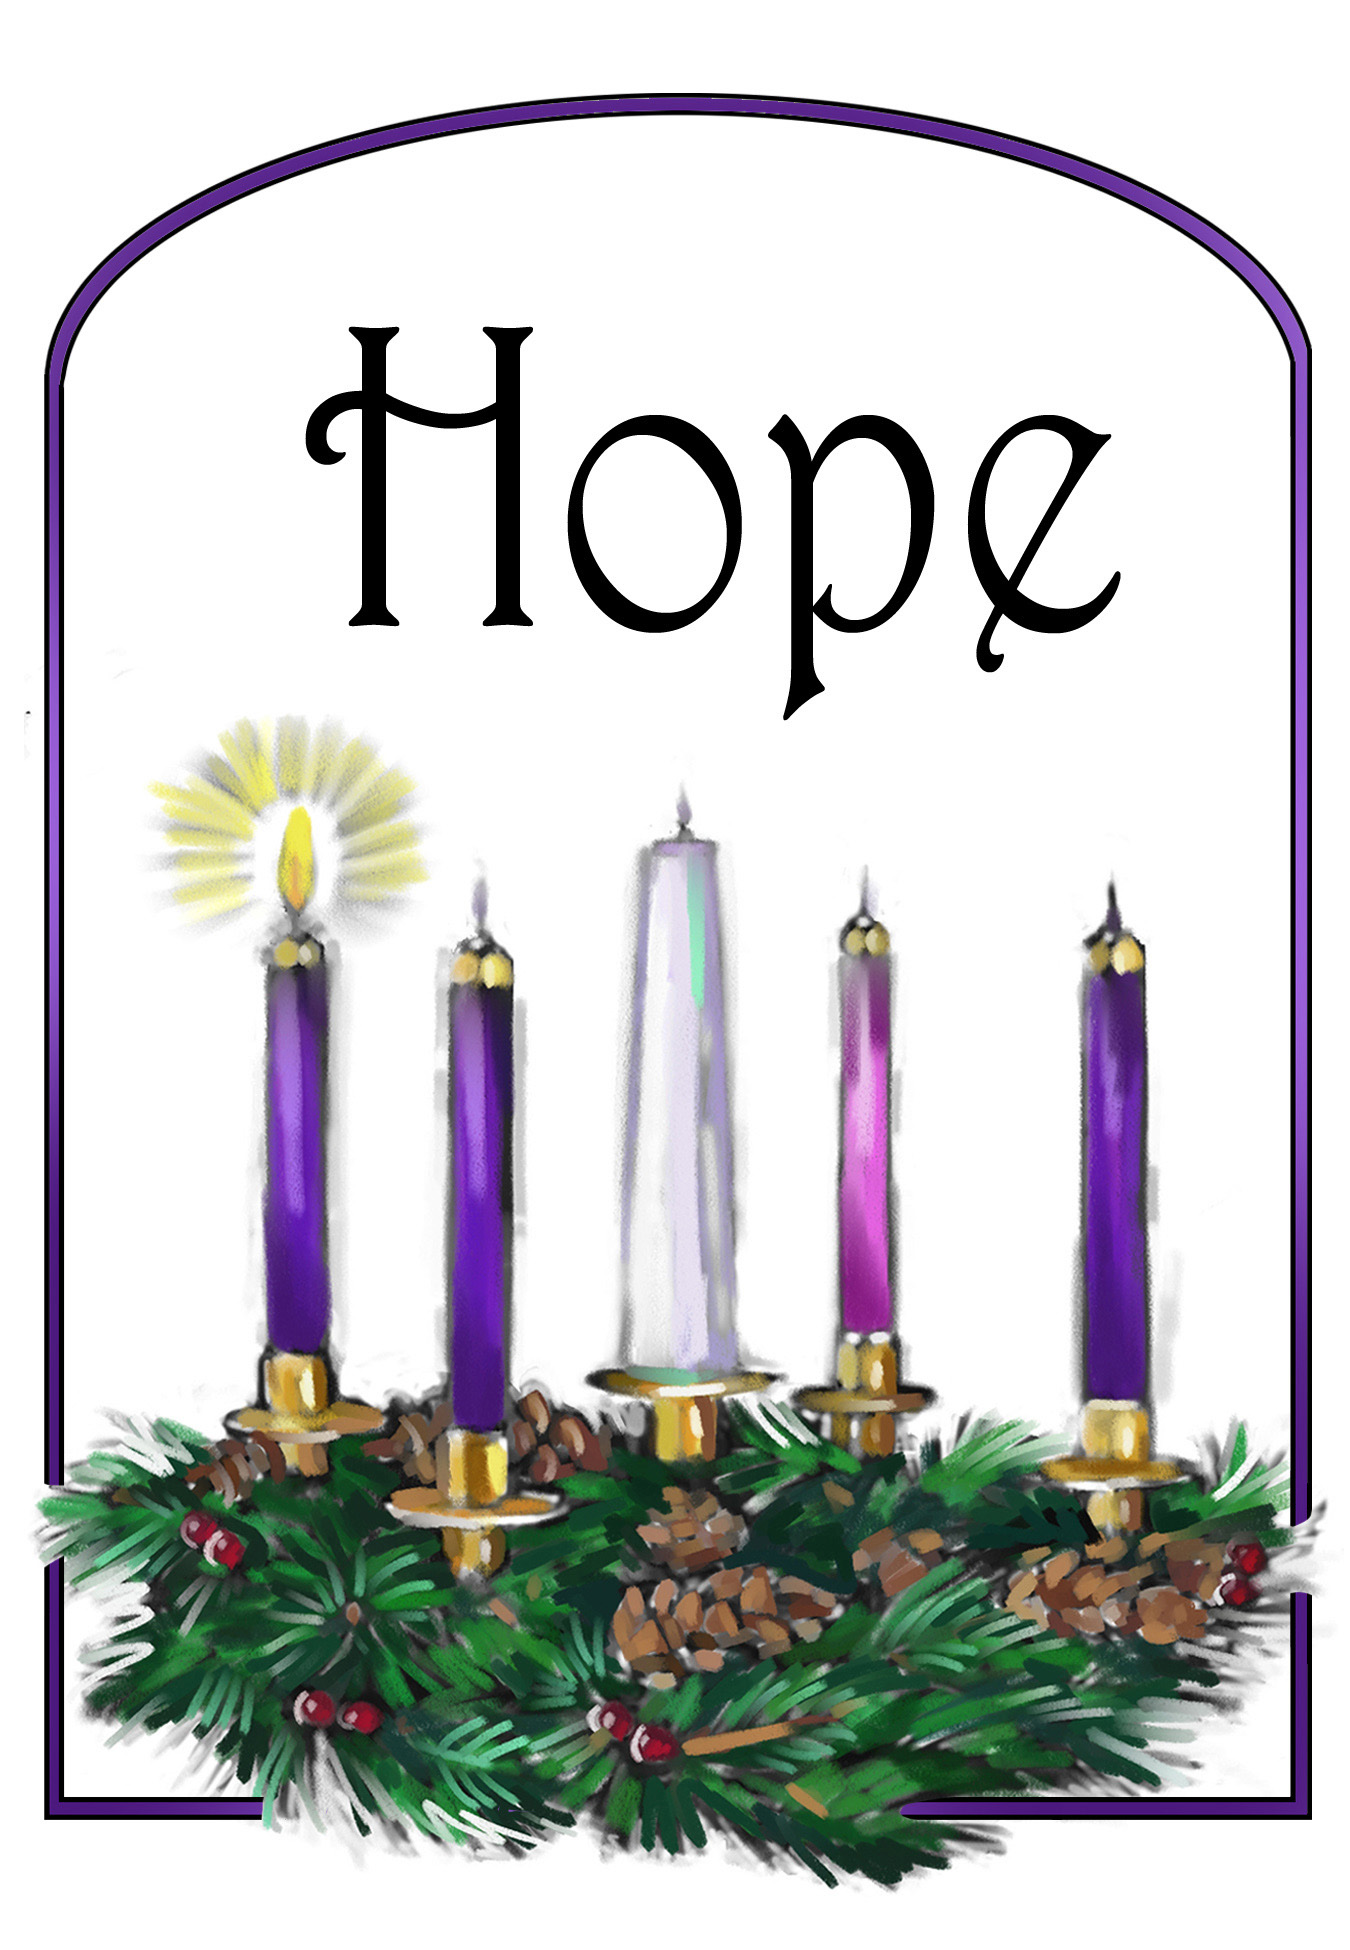 Hope clipart 1st. Free advent cliparts download